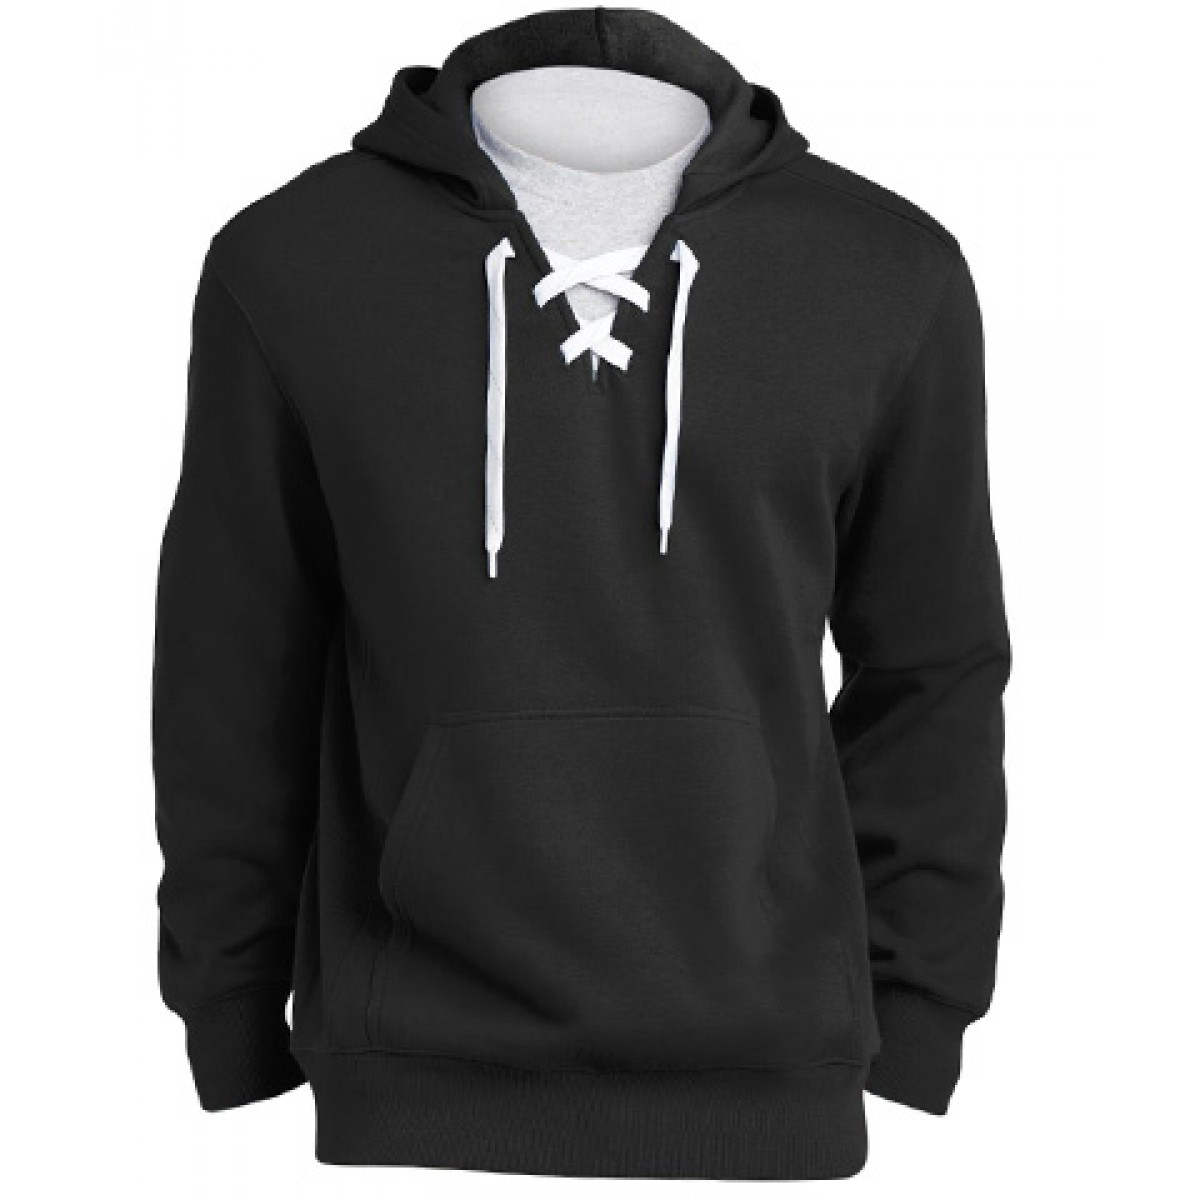 Lace Up Pullover Hooded Sweatshirt-Black-L